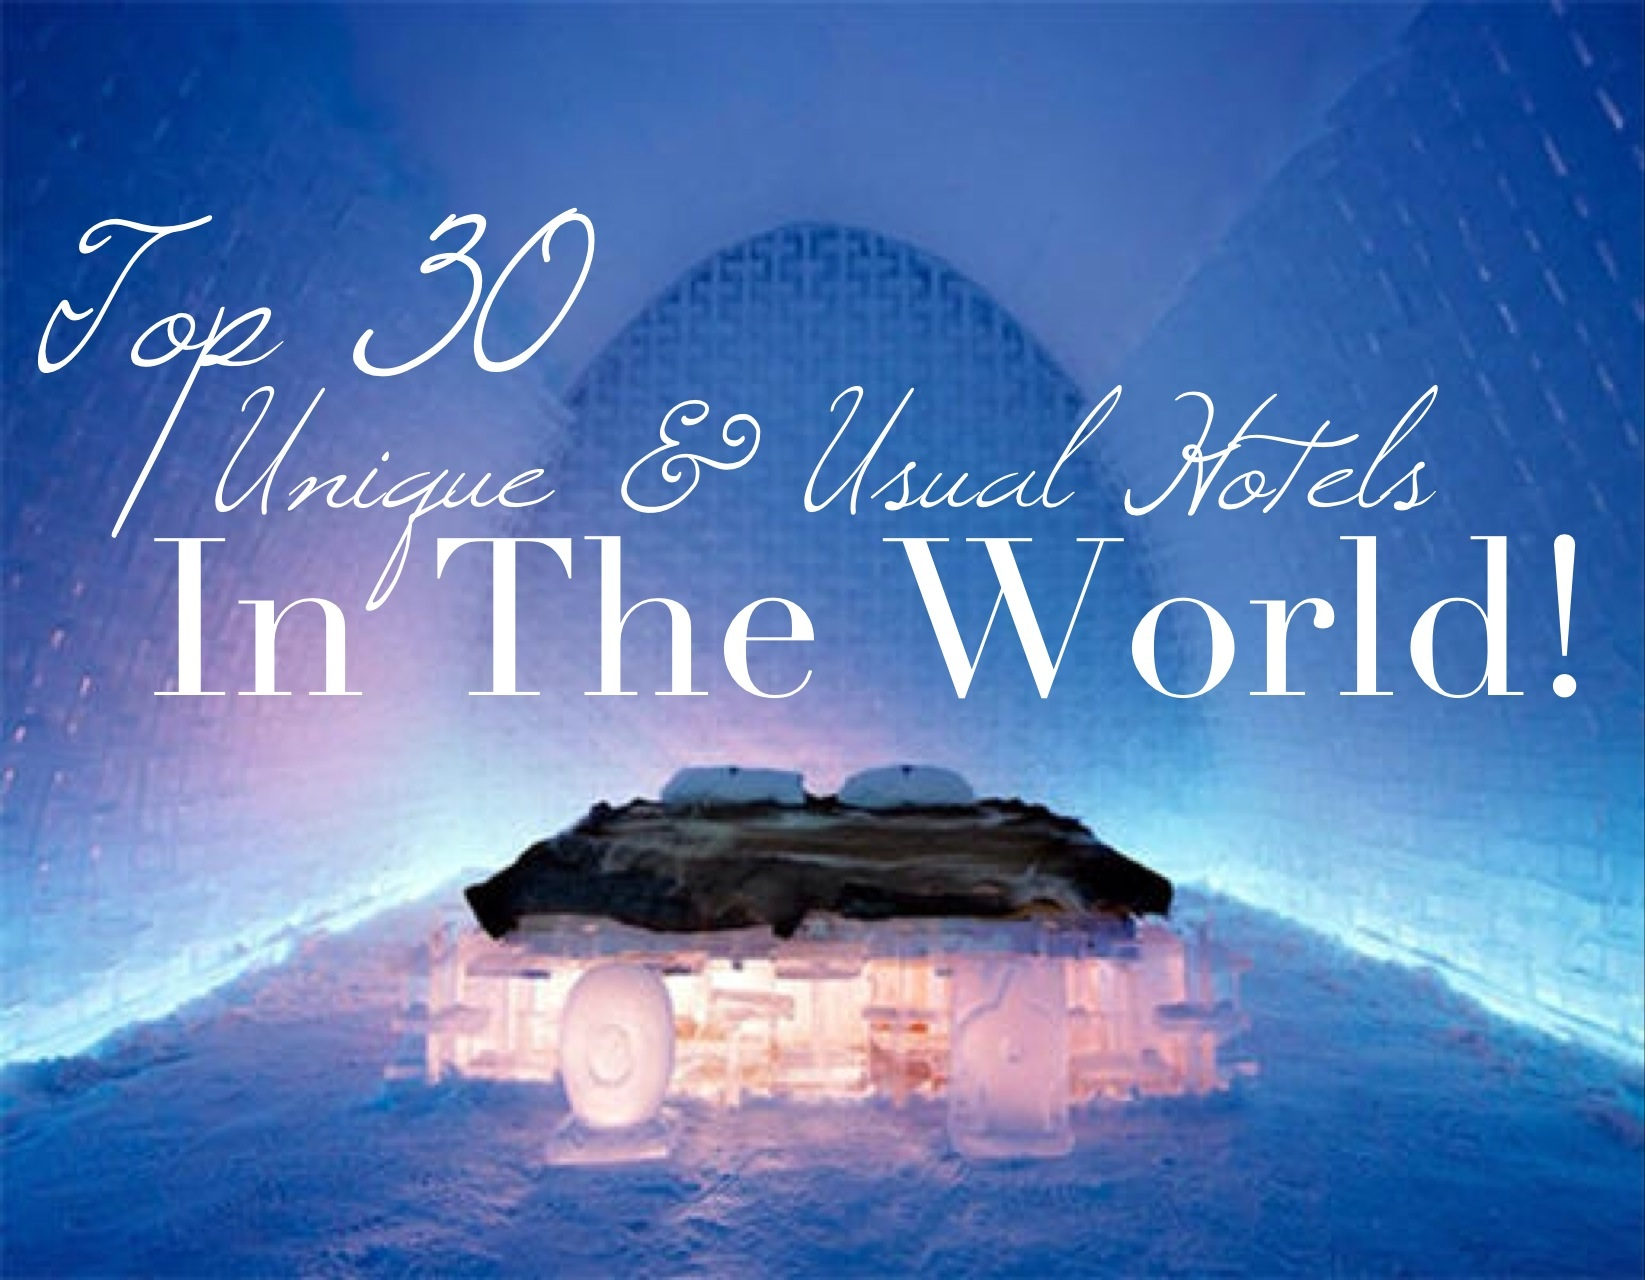 Top 30 unique unusual hotels in the world for Top unique hotels in the world